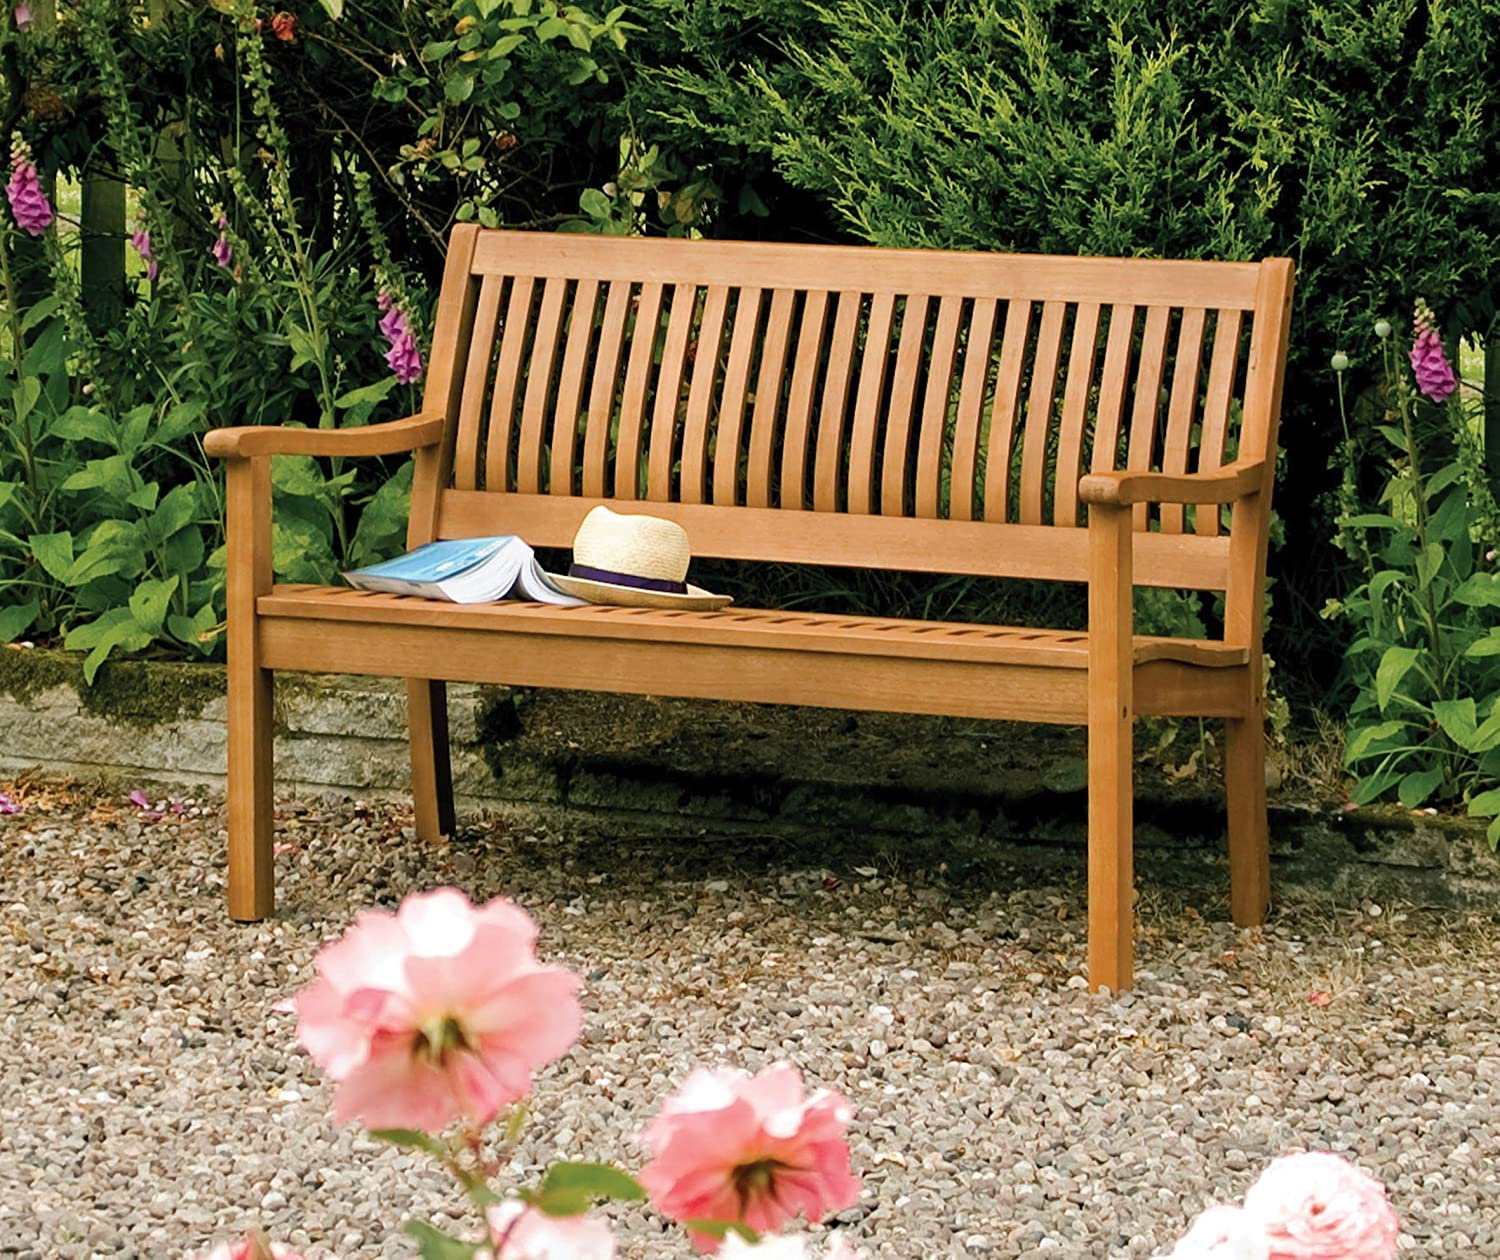 . Rowlinson Willington Bench  Amazon co uk  Garden   Outdoors